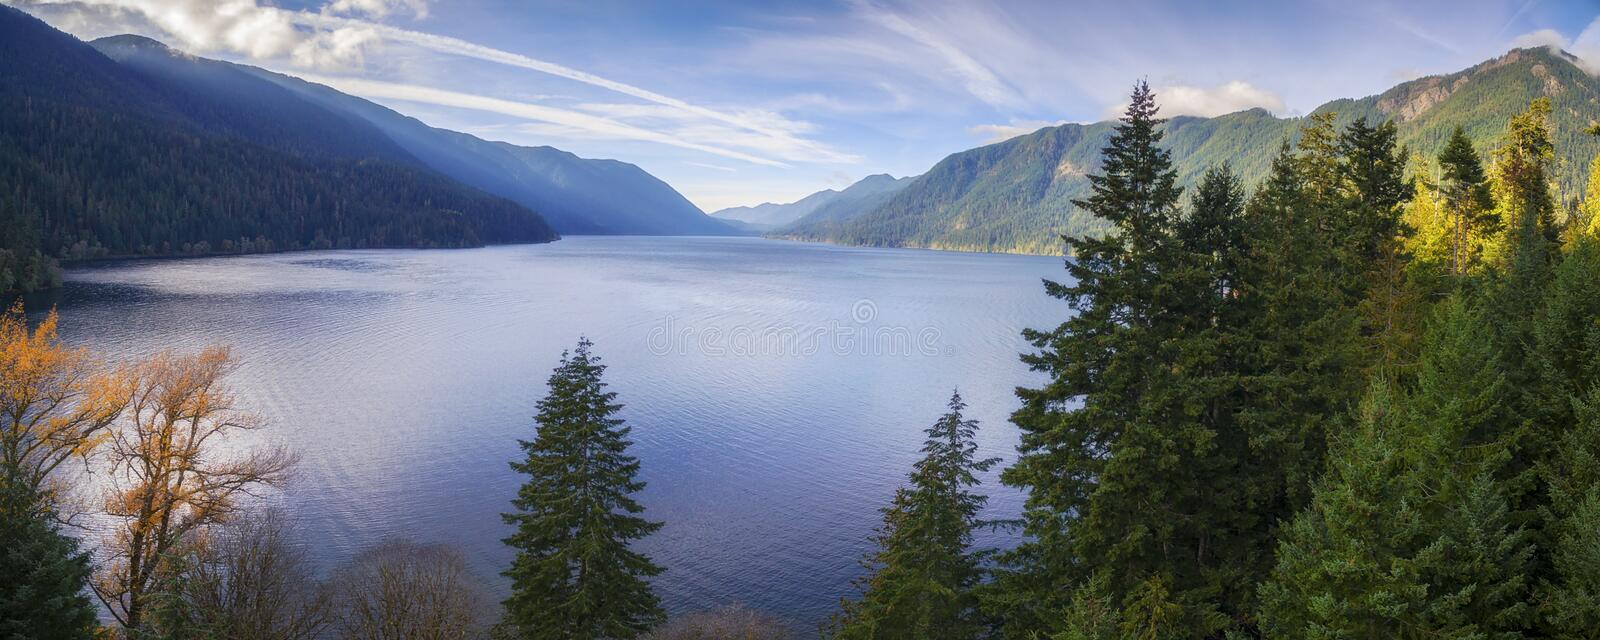 Aerial View of Lake Crescent in the Olympic Peninsula. Lake Crescent is a deep lake located entirely within Olympic National Park in Washington, United States royalty free stock image